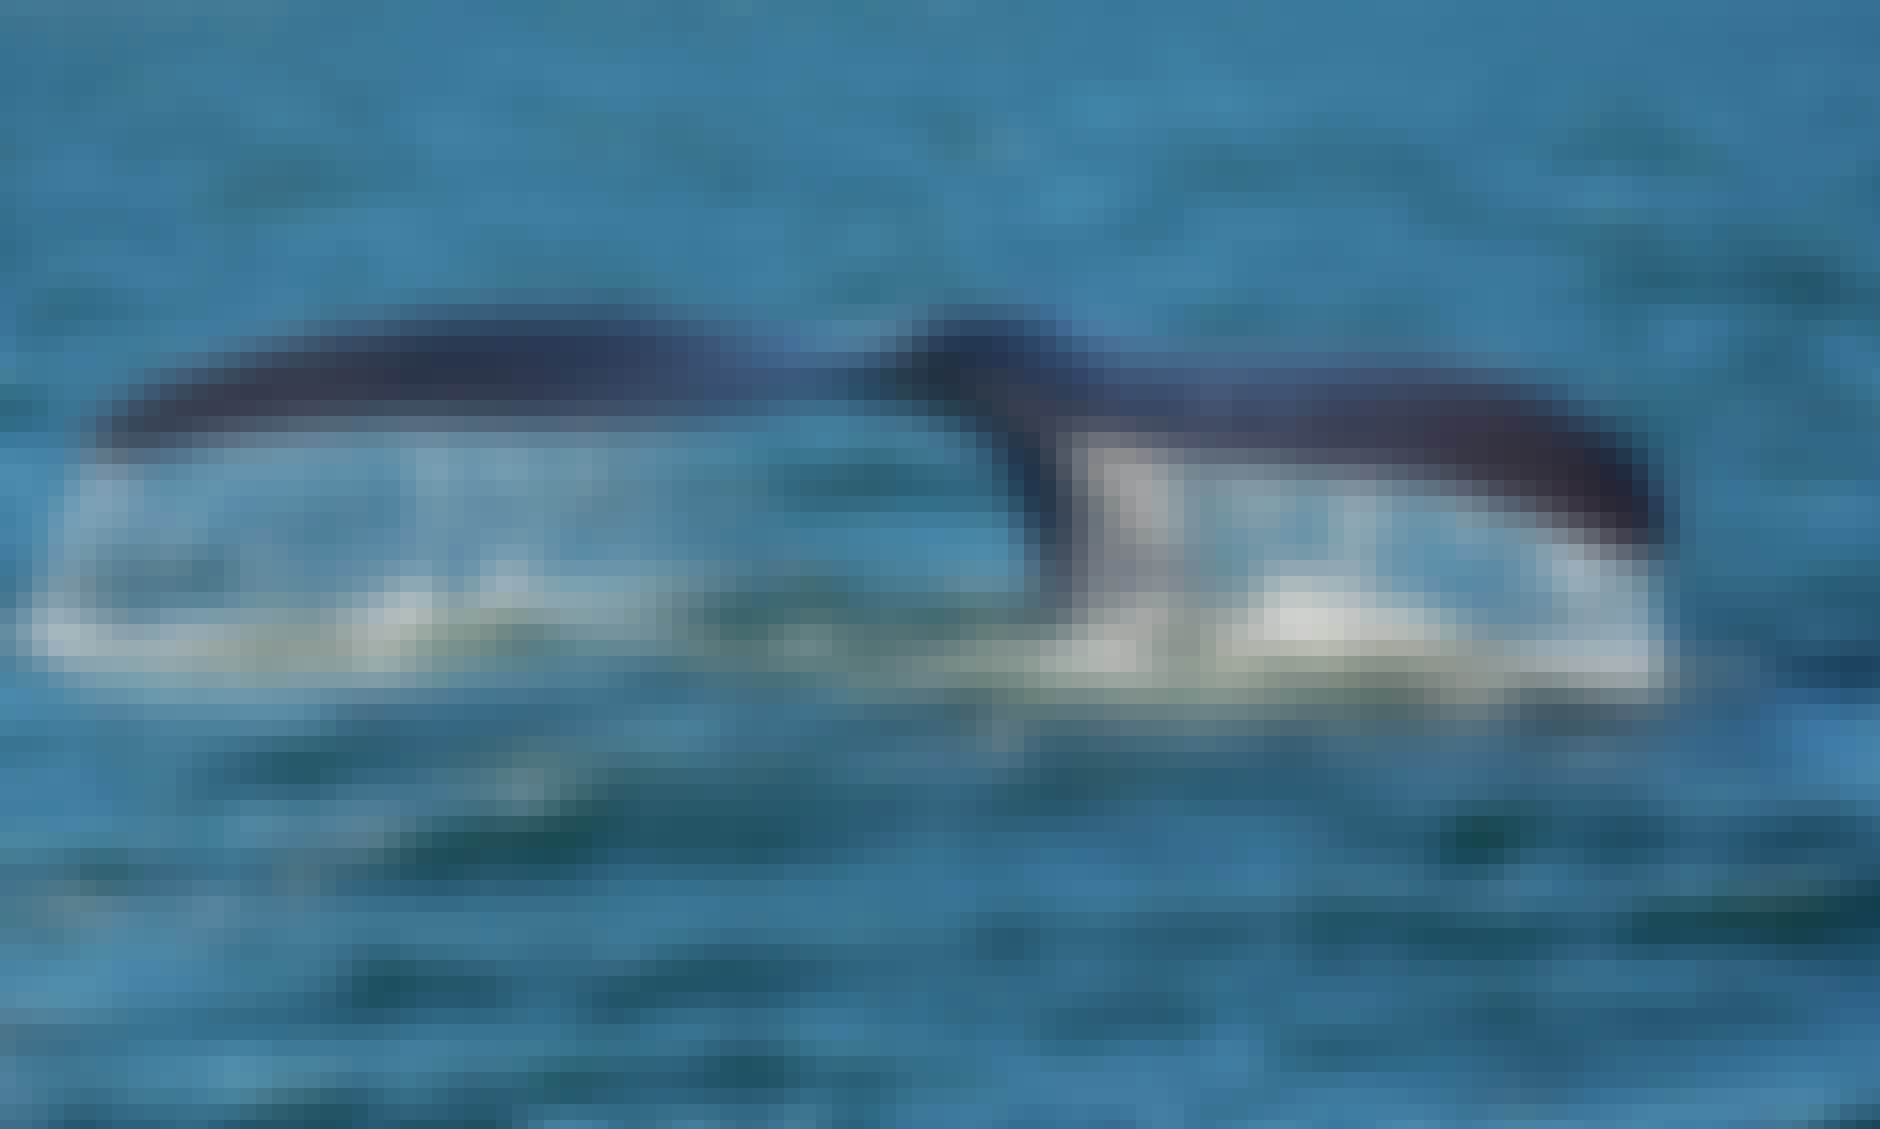 Spectacular Boat Based Whale Watching Tour for 2 Hours in Western Cape, South Africa